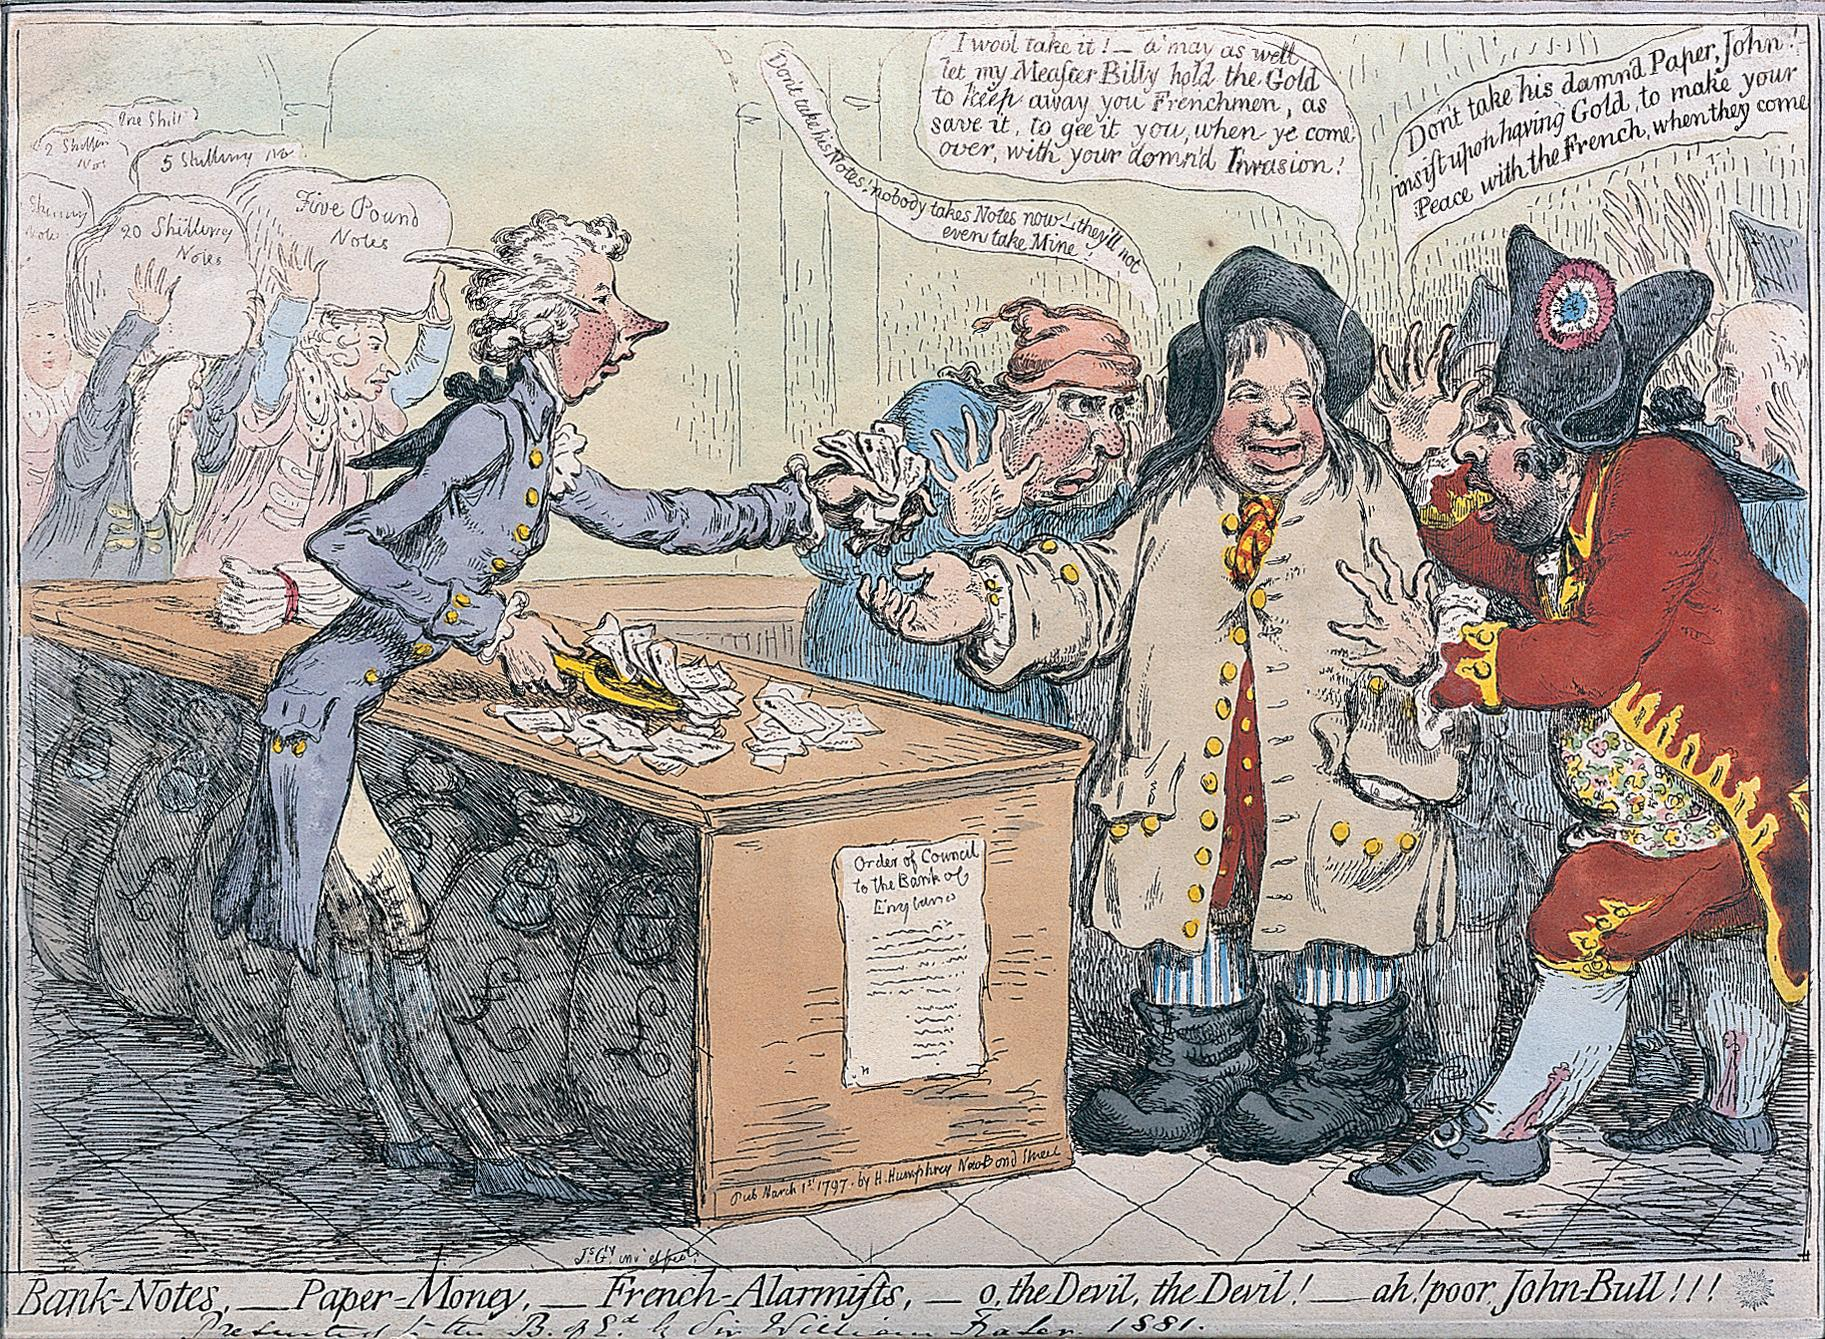 Banknotes, paper money and French alarmists, James Gillray, 1 March 1797.